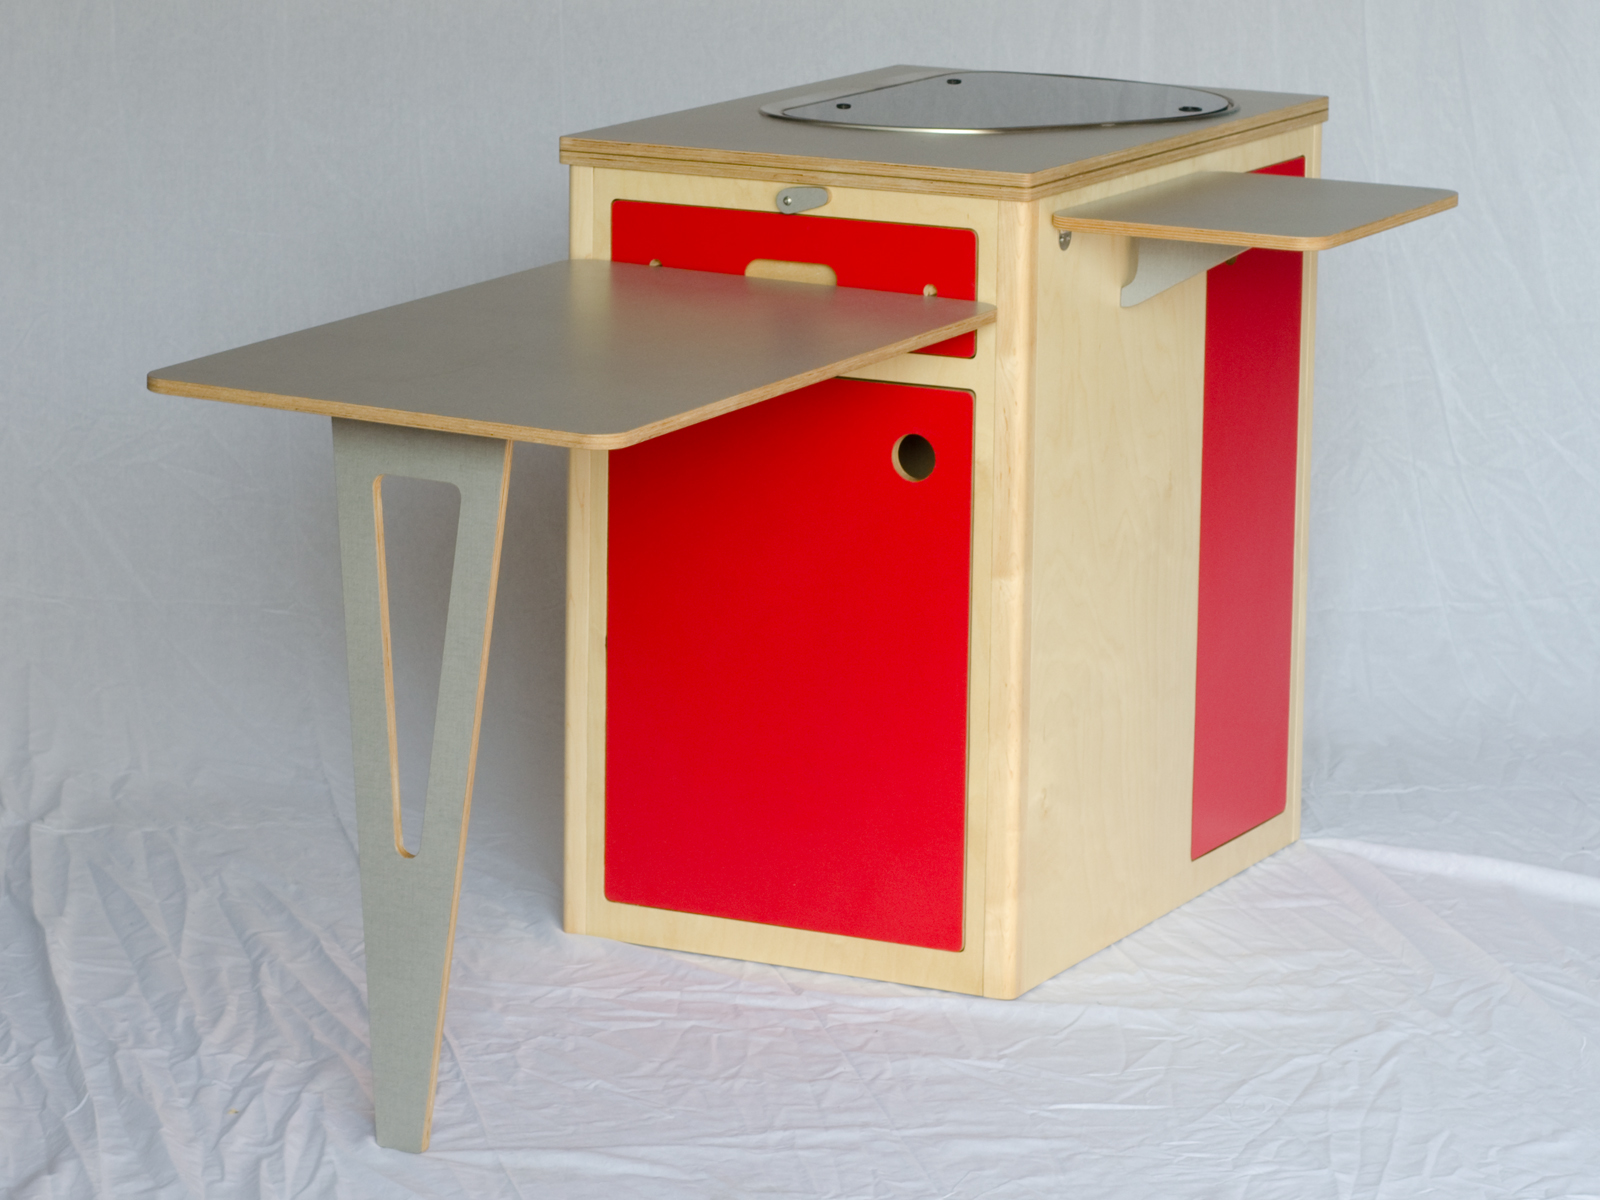 Caping pod closed with table